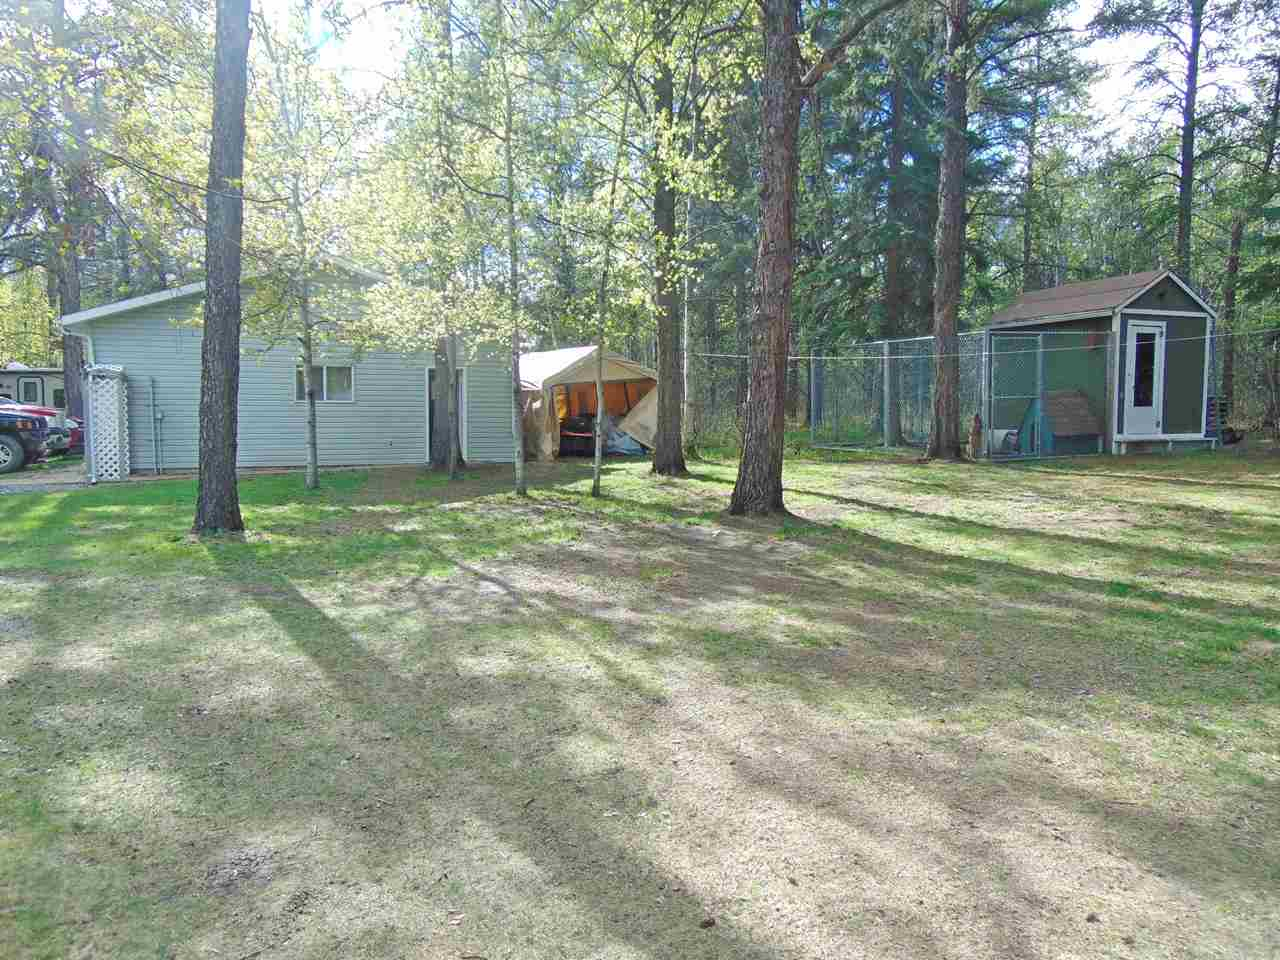 Photo 6: 67 59419 Rge Rd 240: Rural Westlock County Manufactured Home for sale : MLS(r) # E4064786